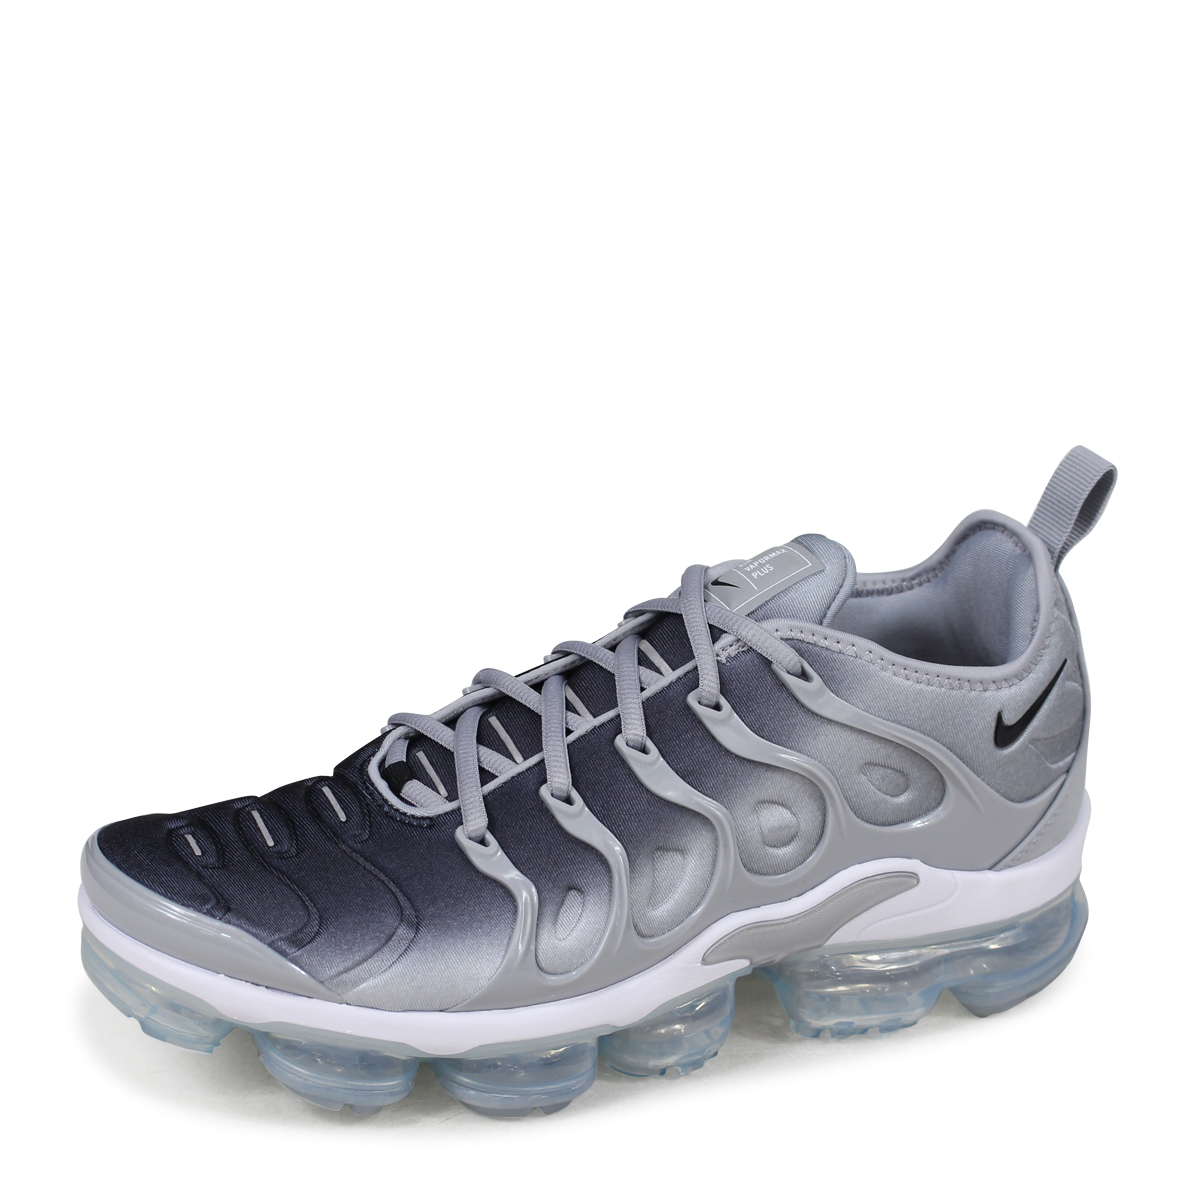 f1f77bdea07 ALLSPORTS  NIKE AIR VAPORMAX PLUS Nike air vapor max plus sneakers men  924